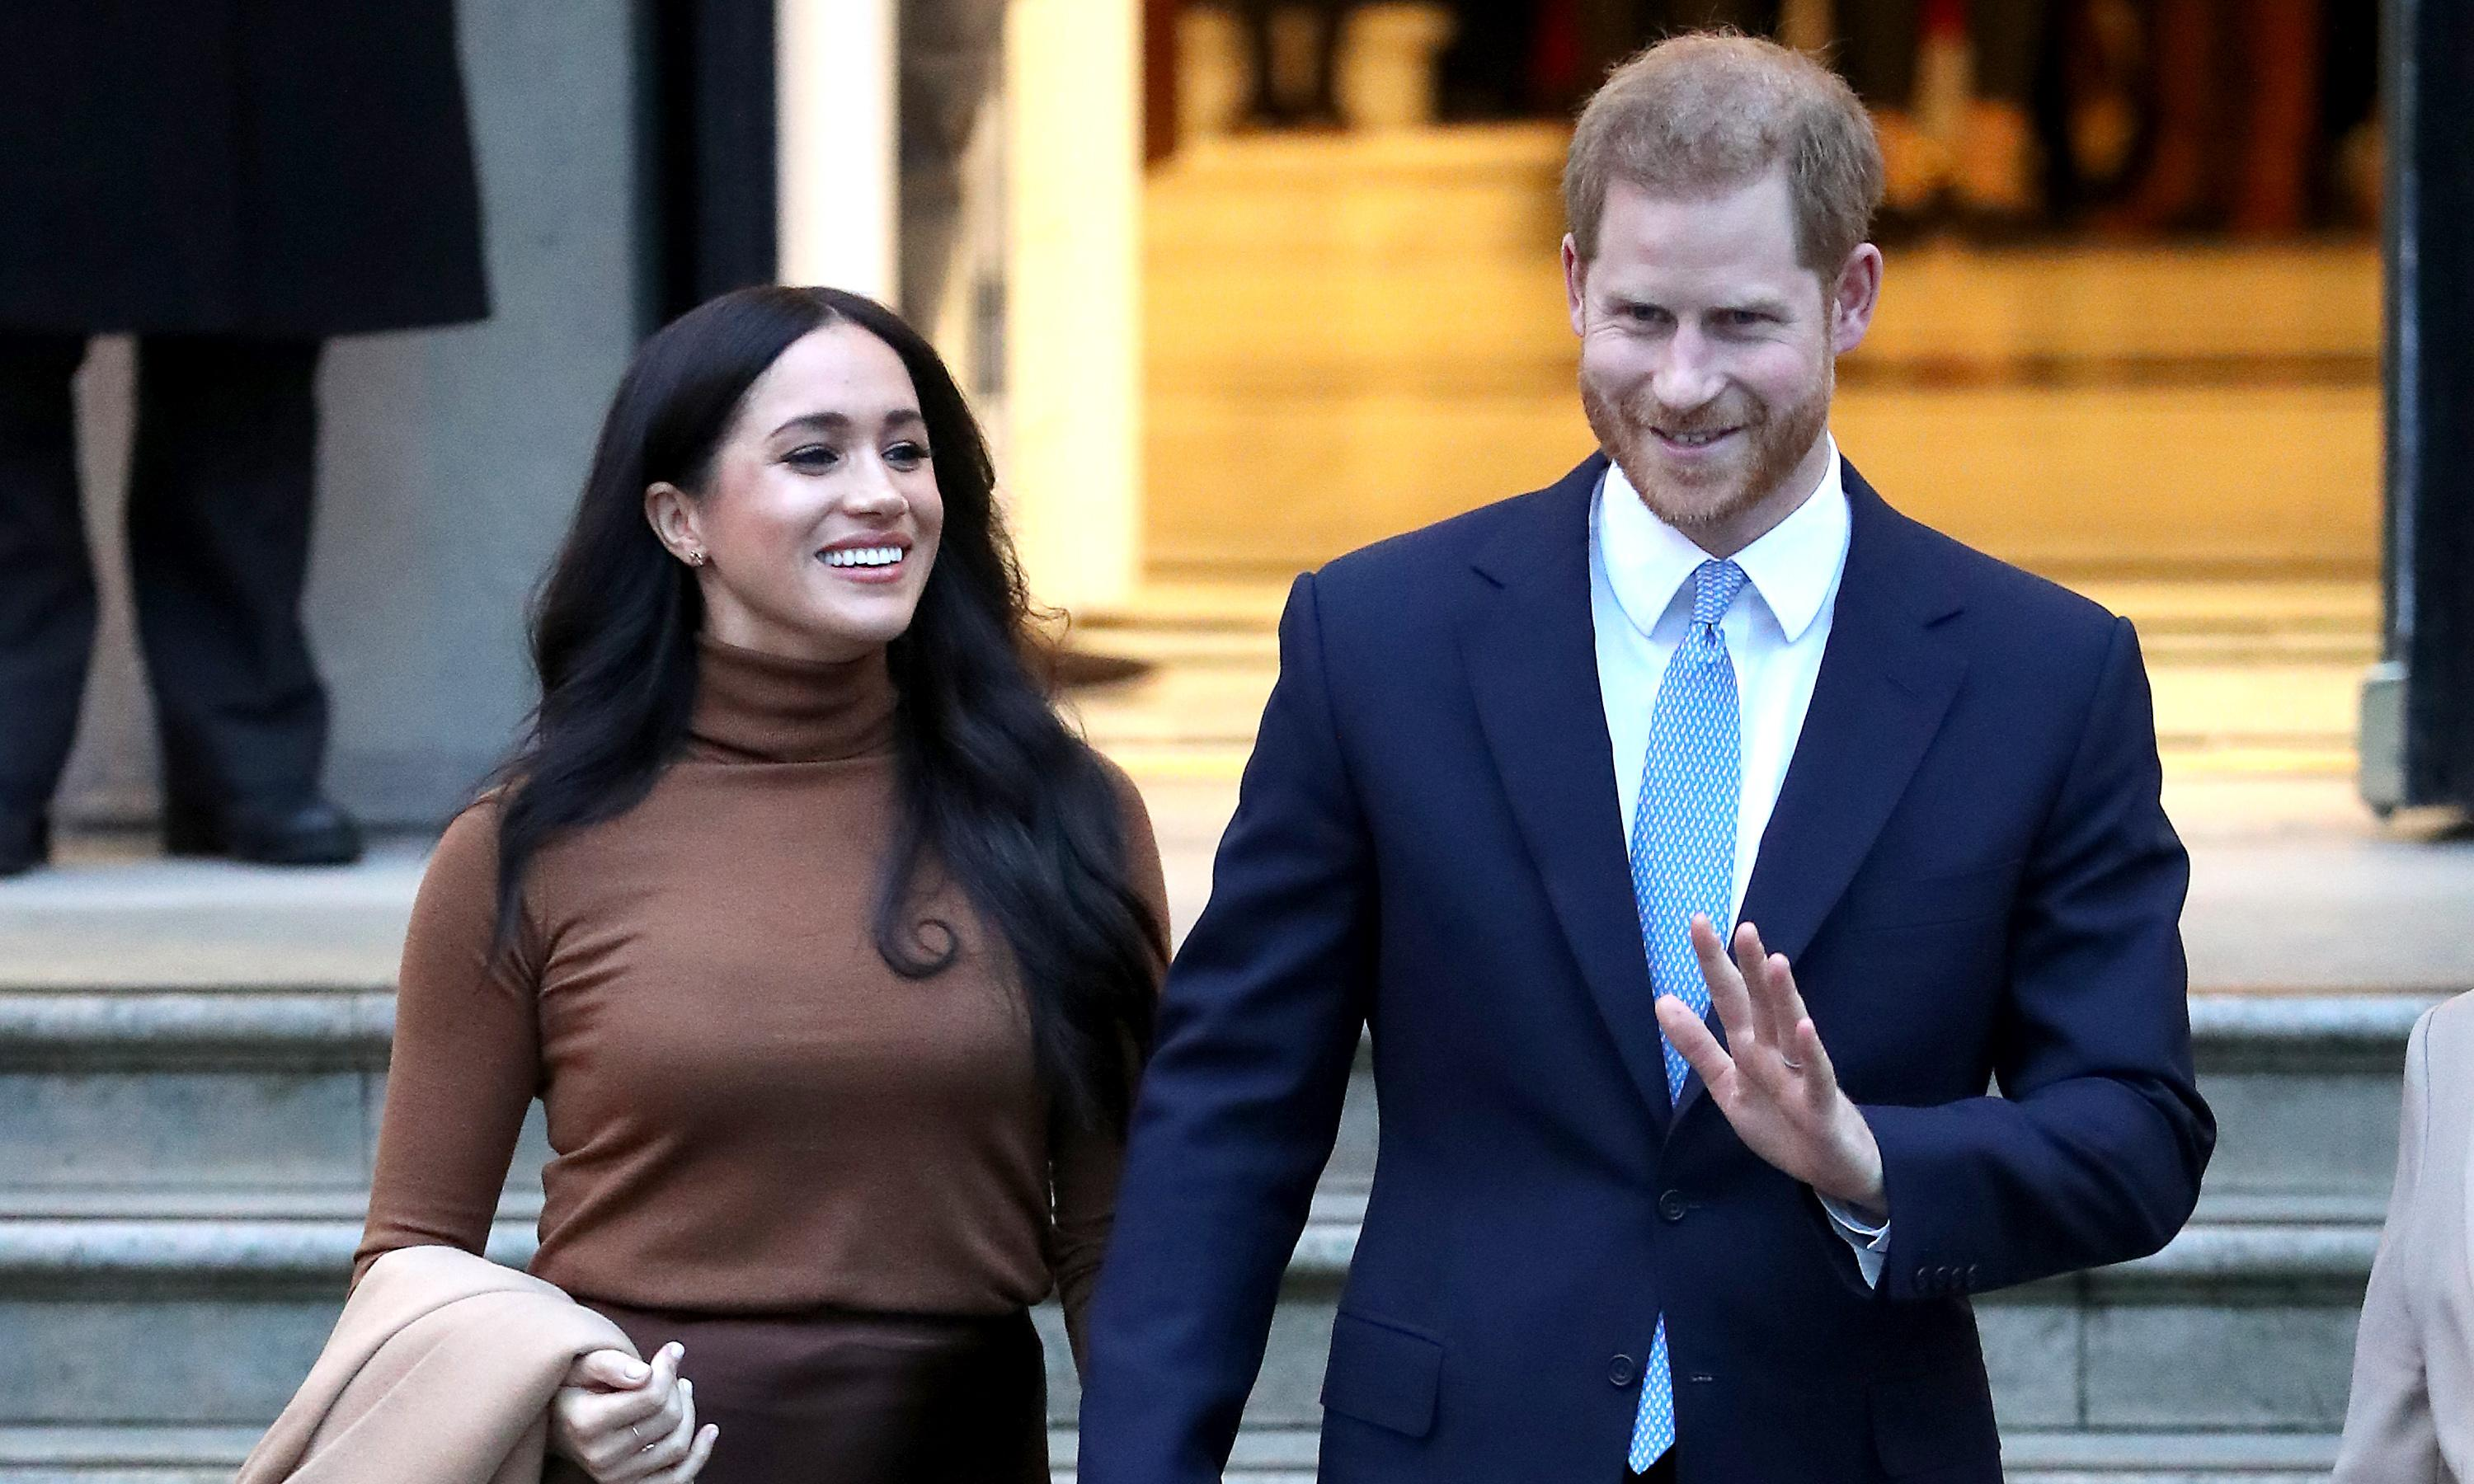 Harry and Meghan may be heading to Canada but does Canada want them?